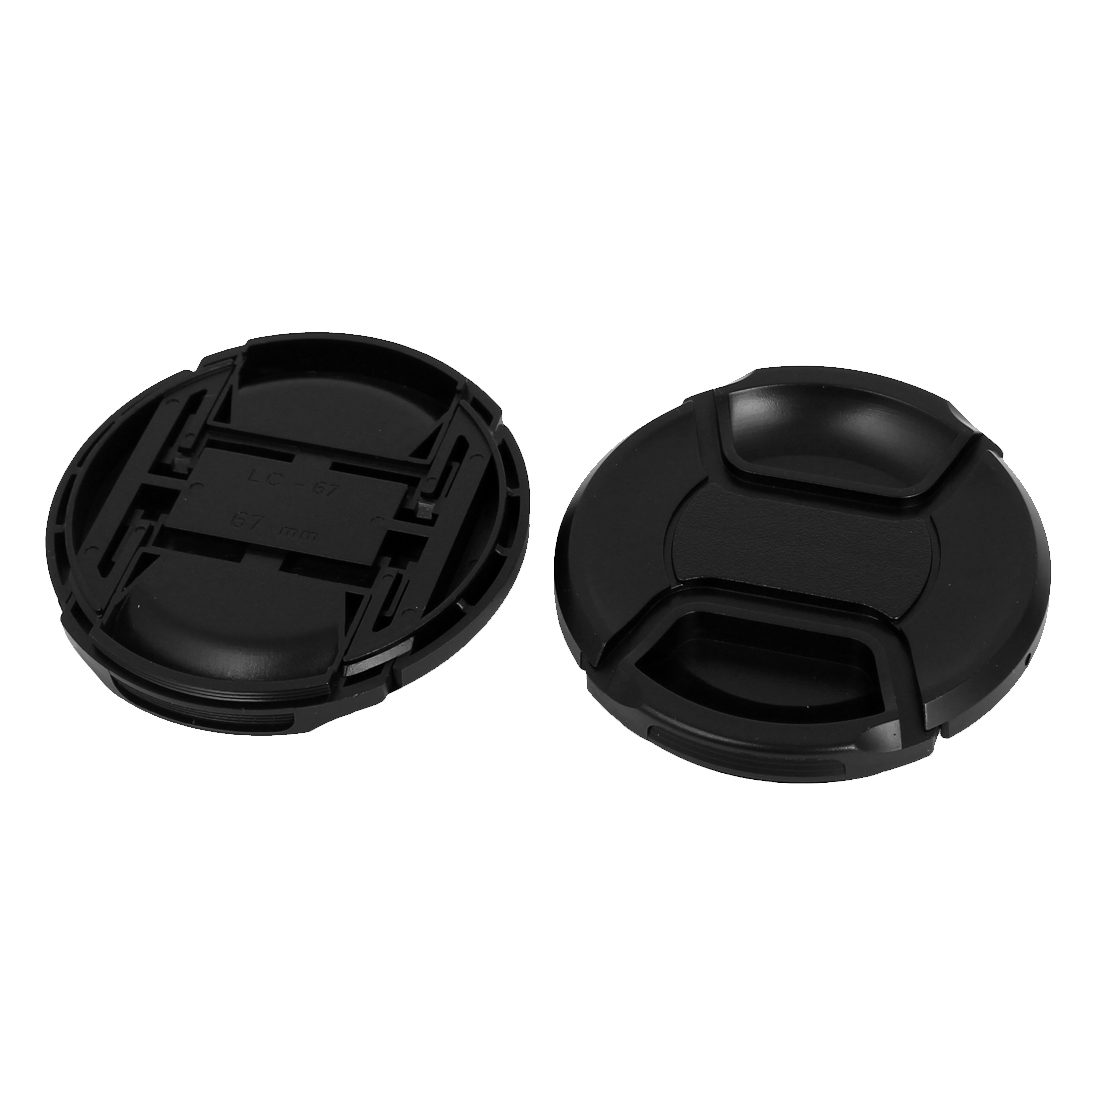 67mm Dia Plastic Front Snap Digital Camera Lens Caps Cover Protector Black 2Pcs